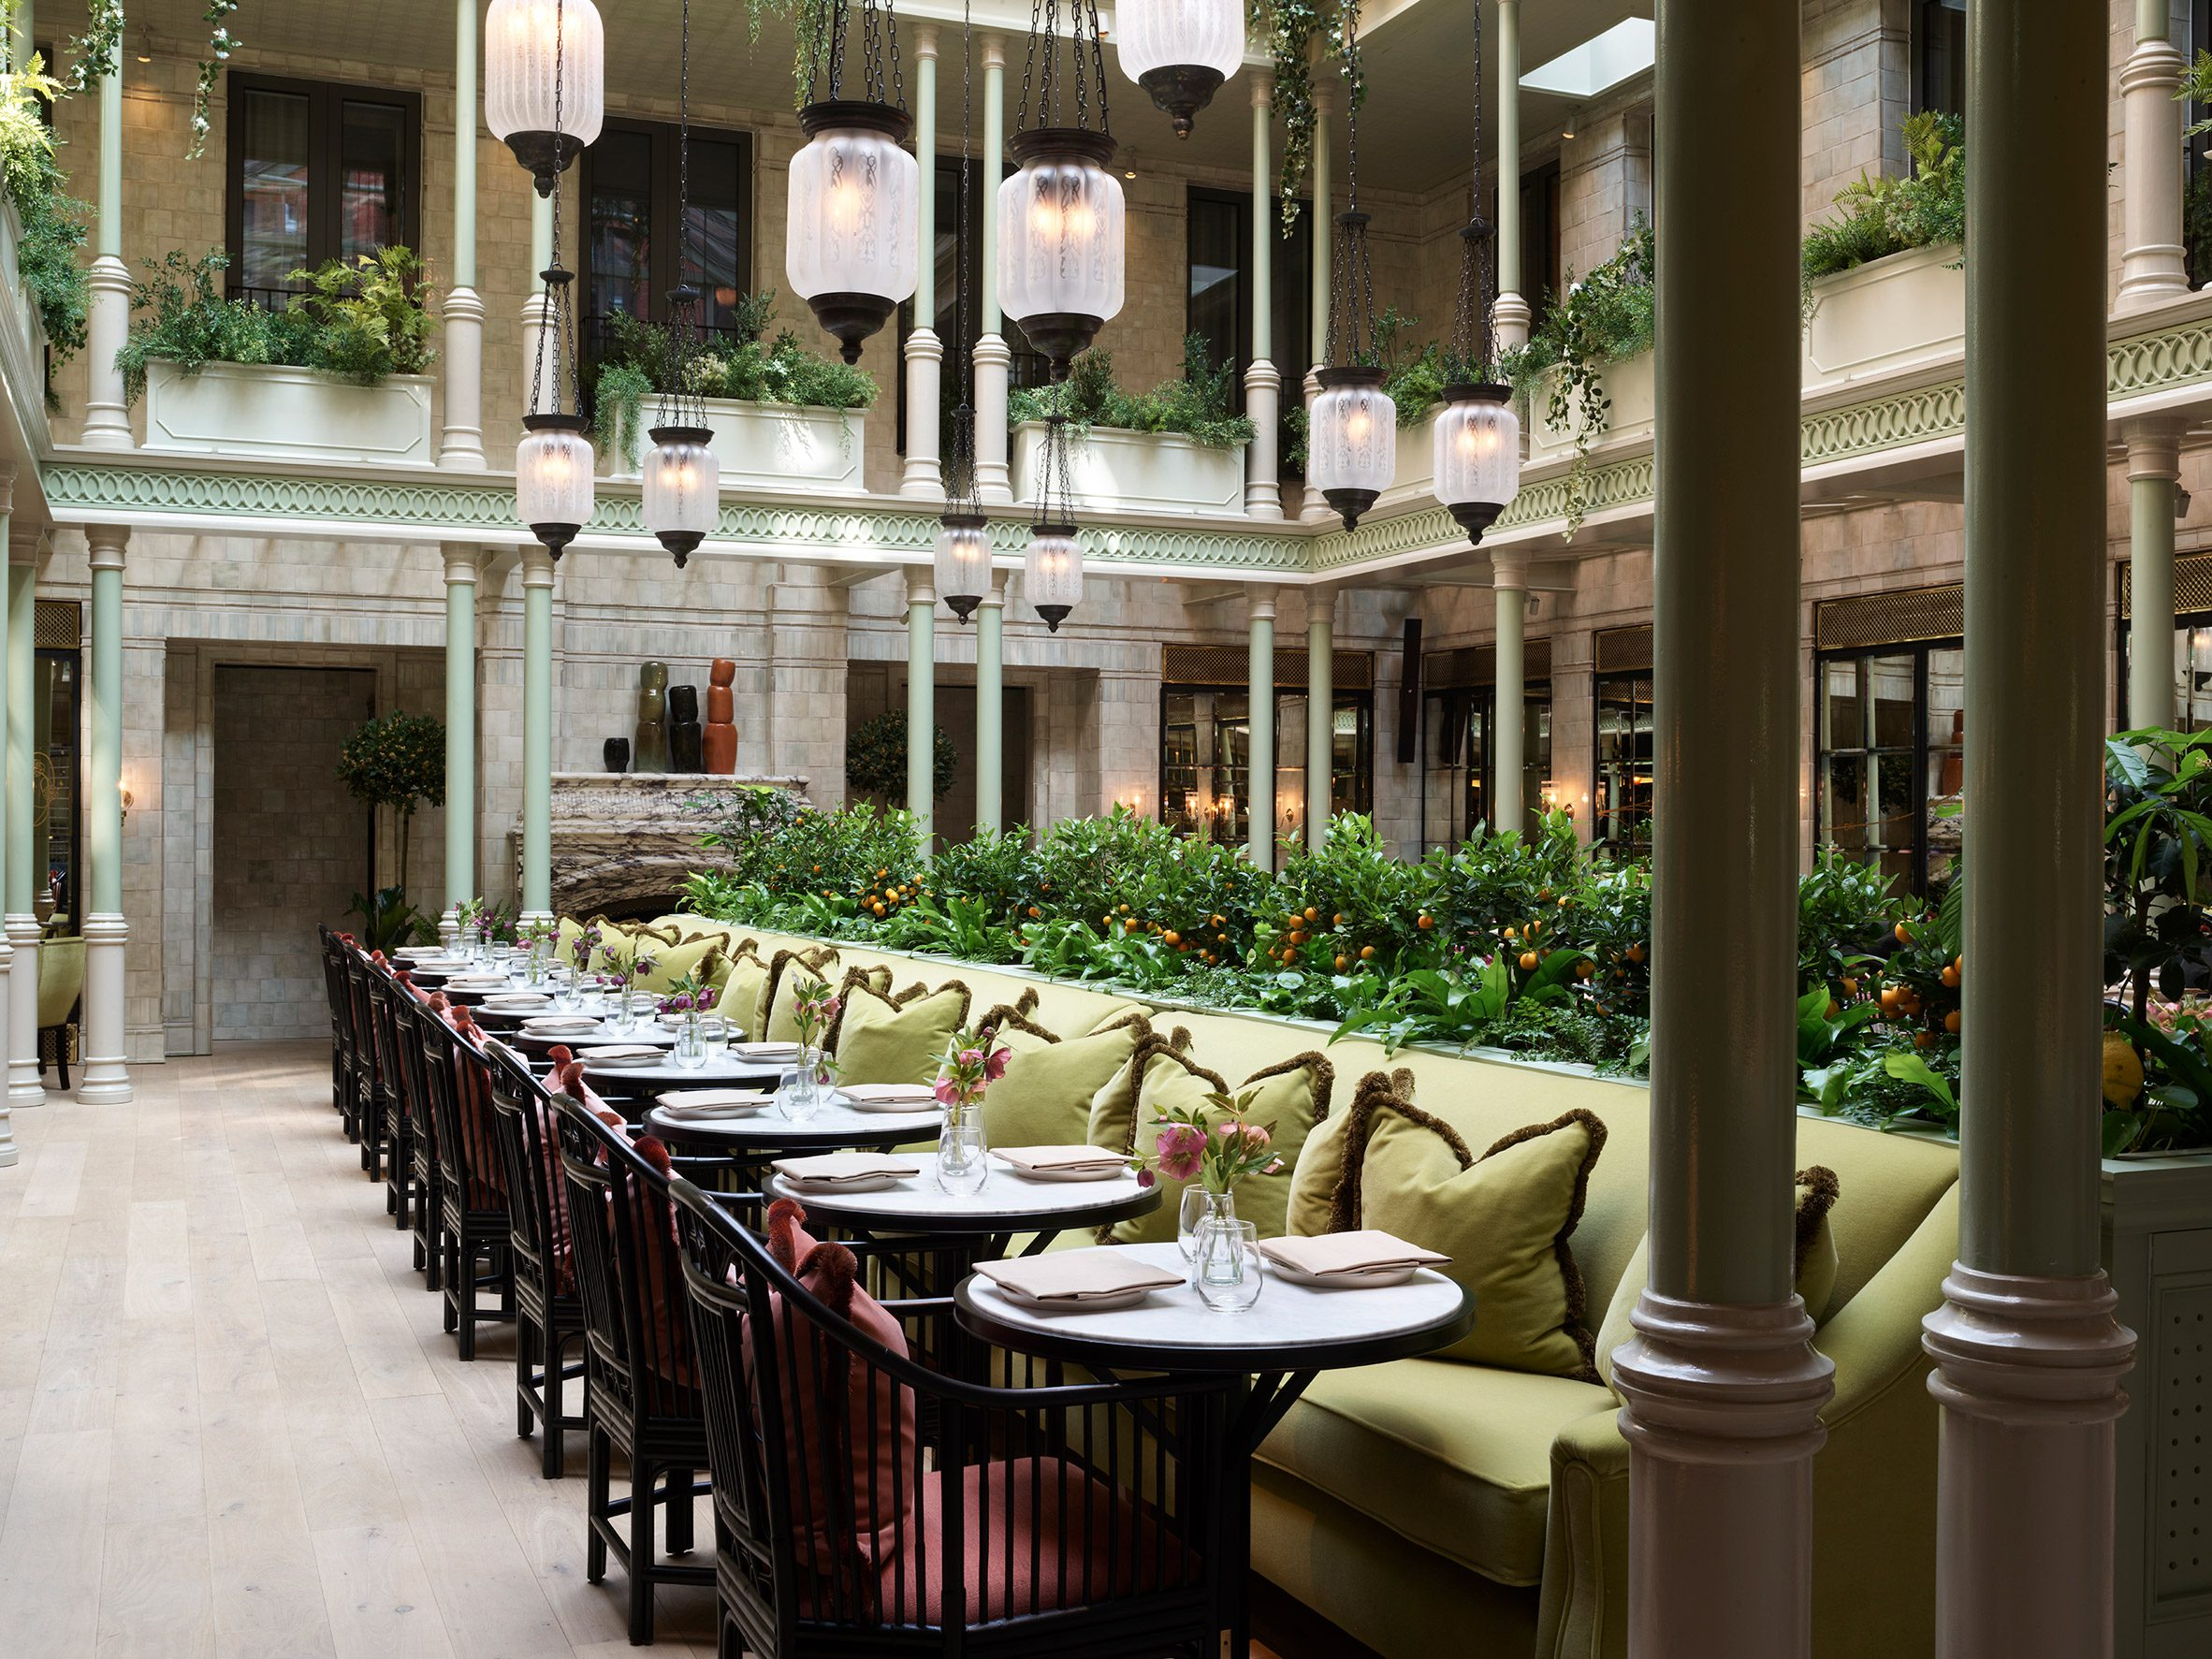 Planting trough and green bench seating in hotel interior by Roman and Williams